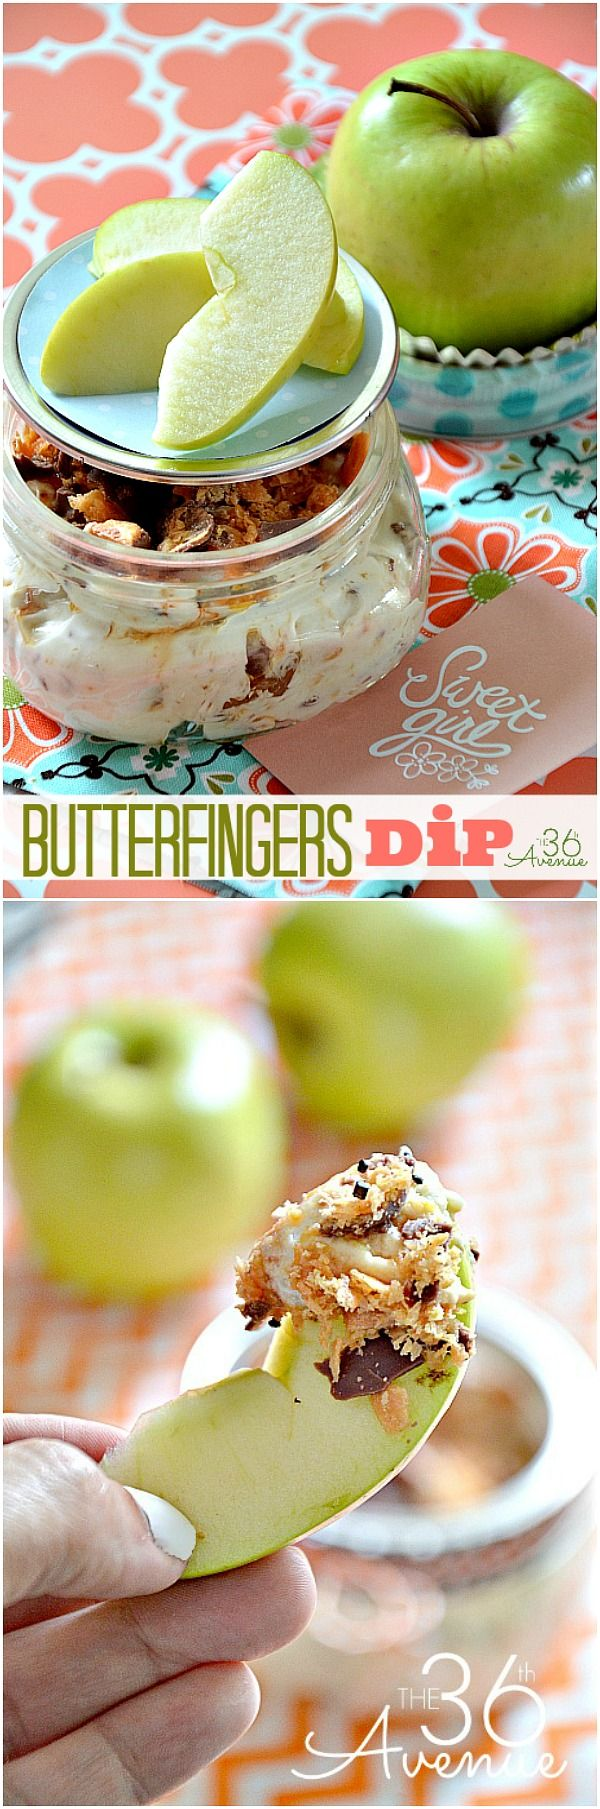 Delicious Butterfingers Dip Recipe at the36thavenue.com